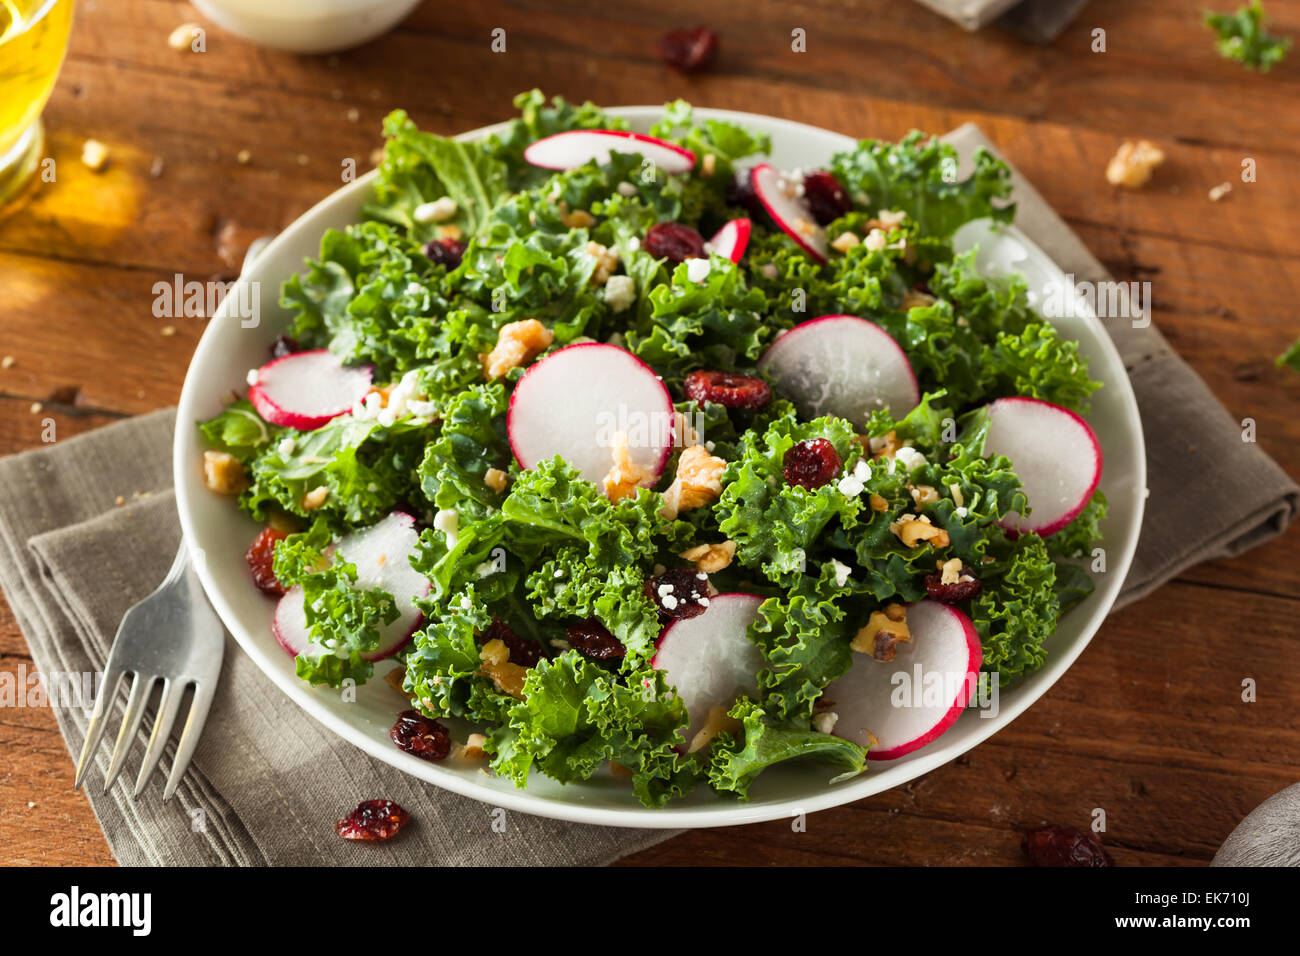 Healthy Raw Kale and Cranberry Salad with Cheese and Nuts - Stock Image